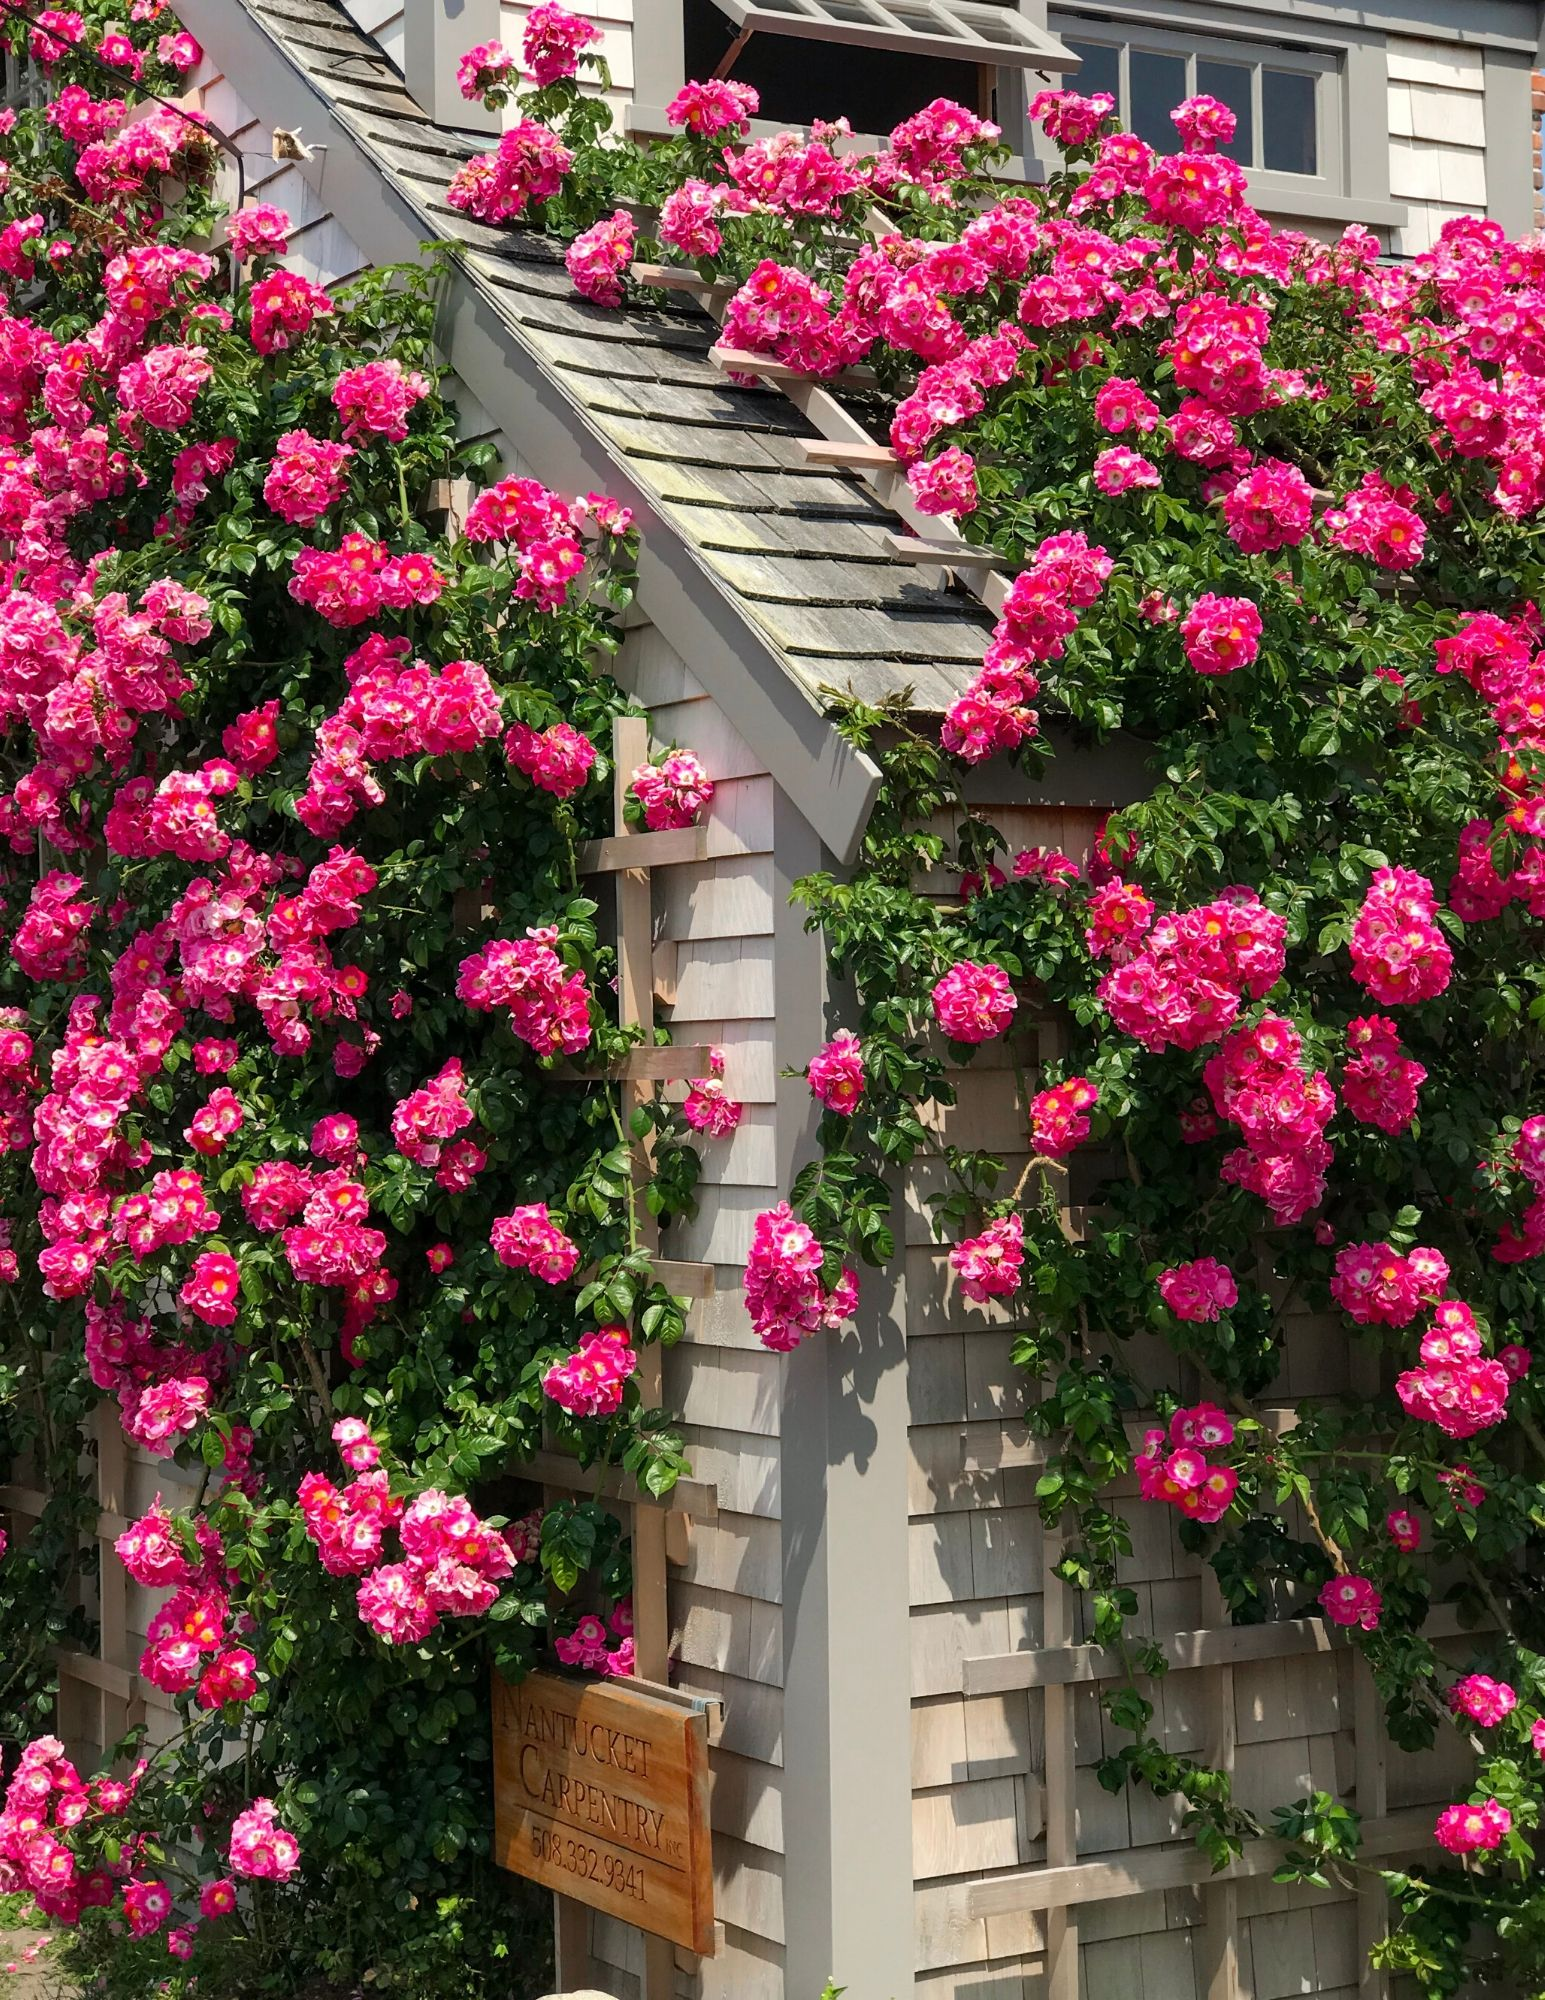 Nantucket Rose Covered Cottages in Sconset-14